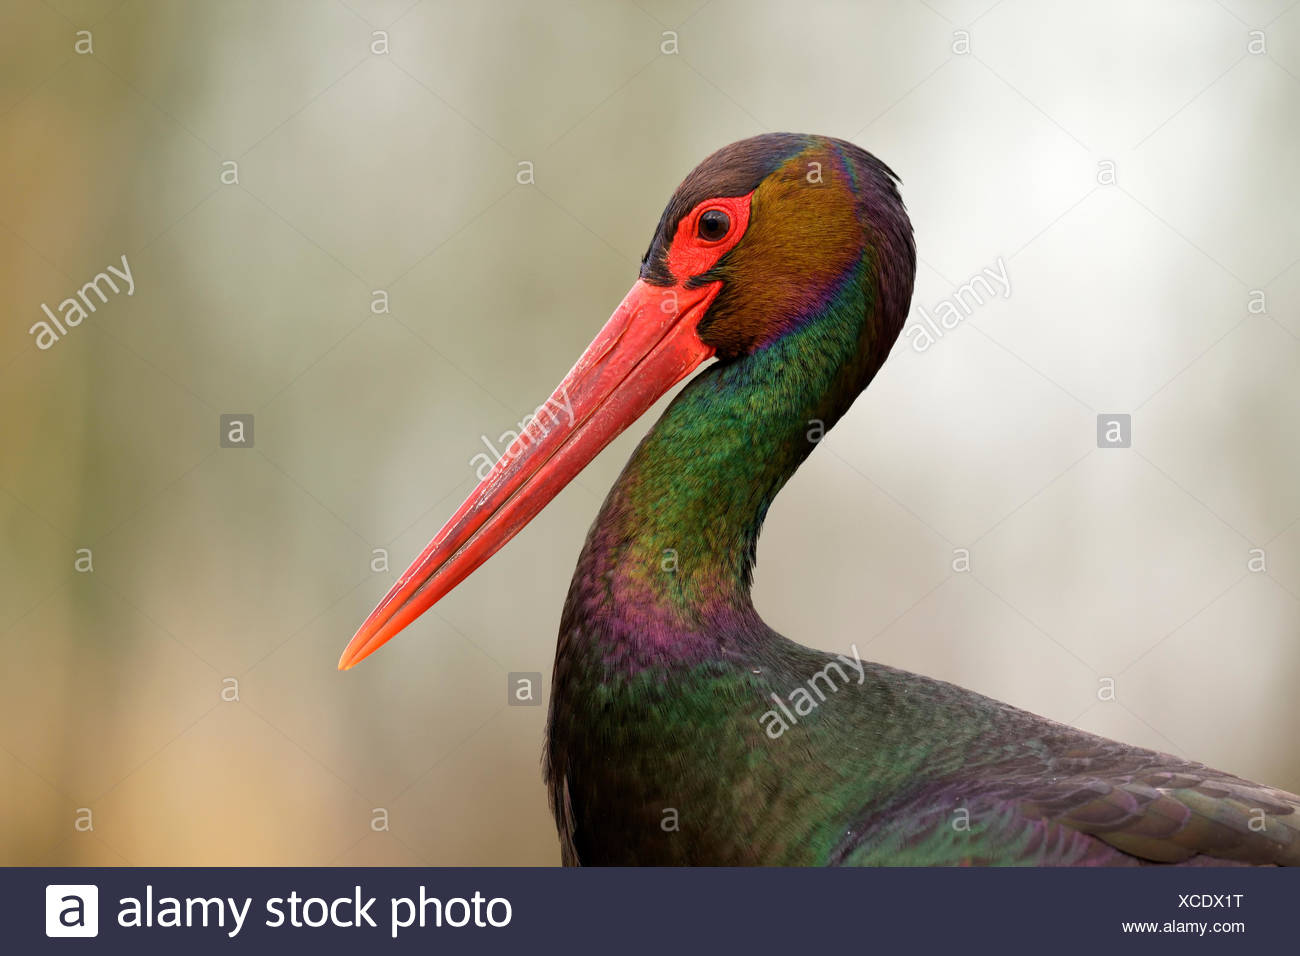 Black stork (Ciconia nigra), head portrait, Kiskunság National Park, Hungary - Stock Image